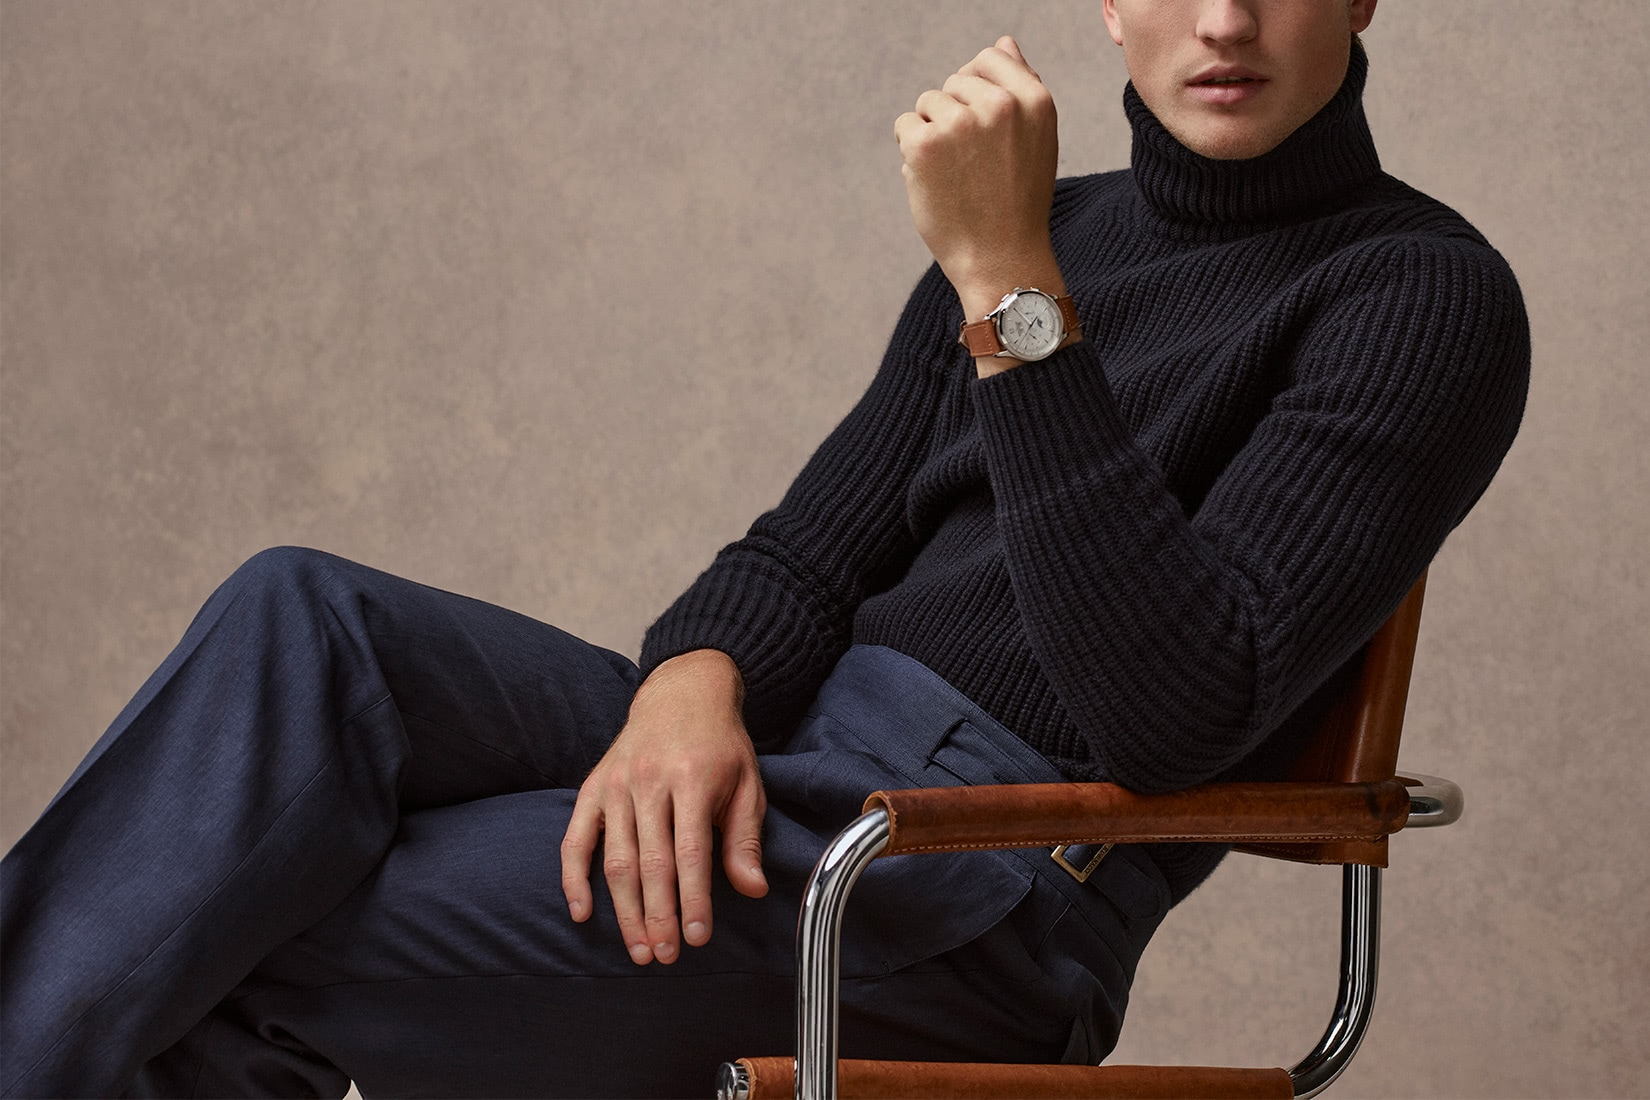 jaeger lecoultre luxury timepieces men style guide luxe digital